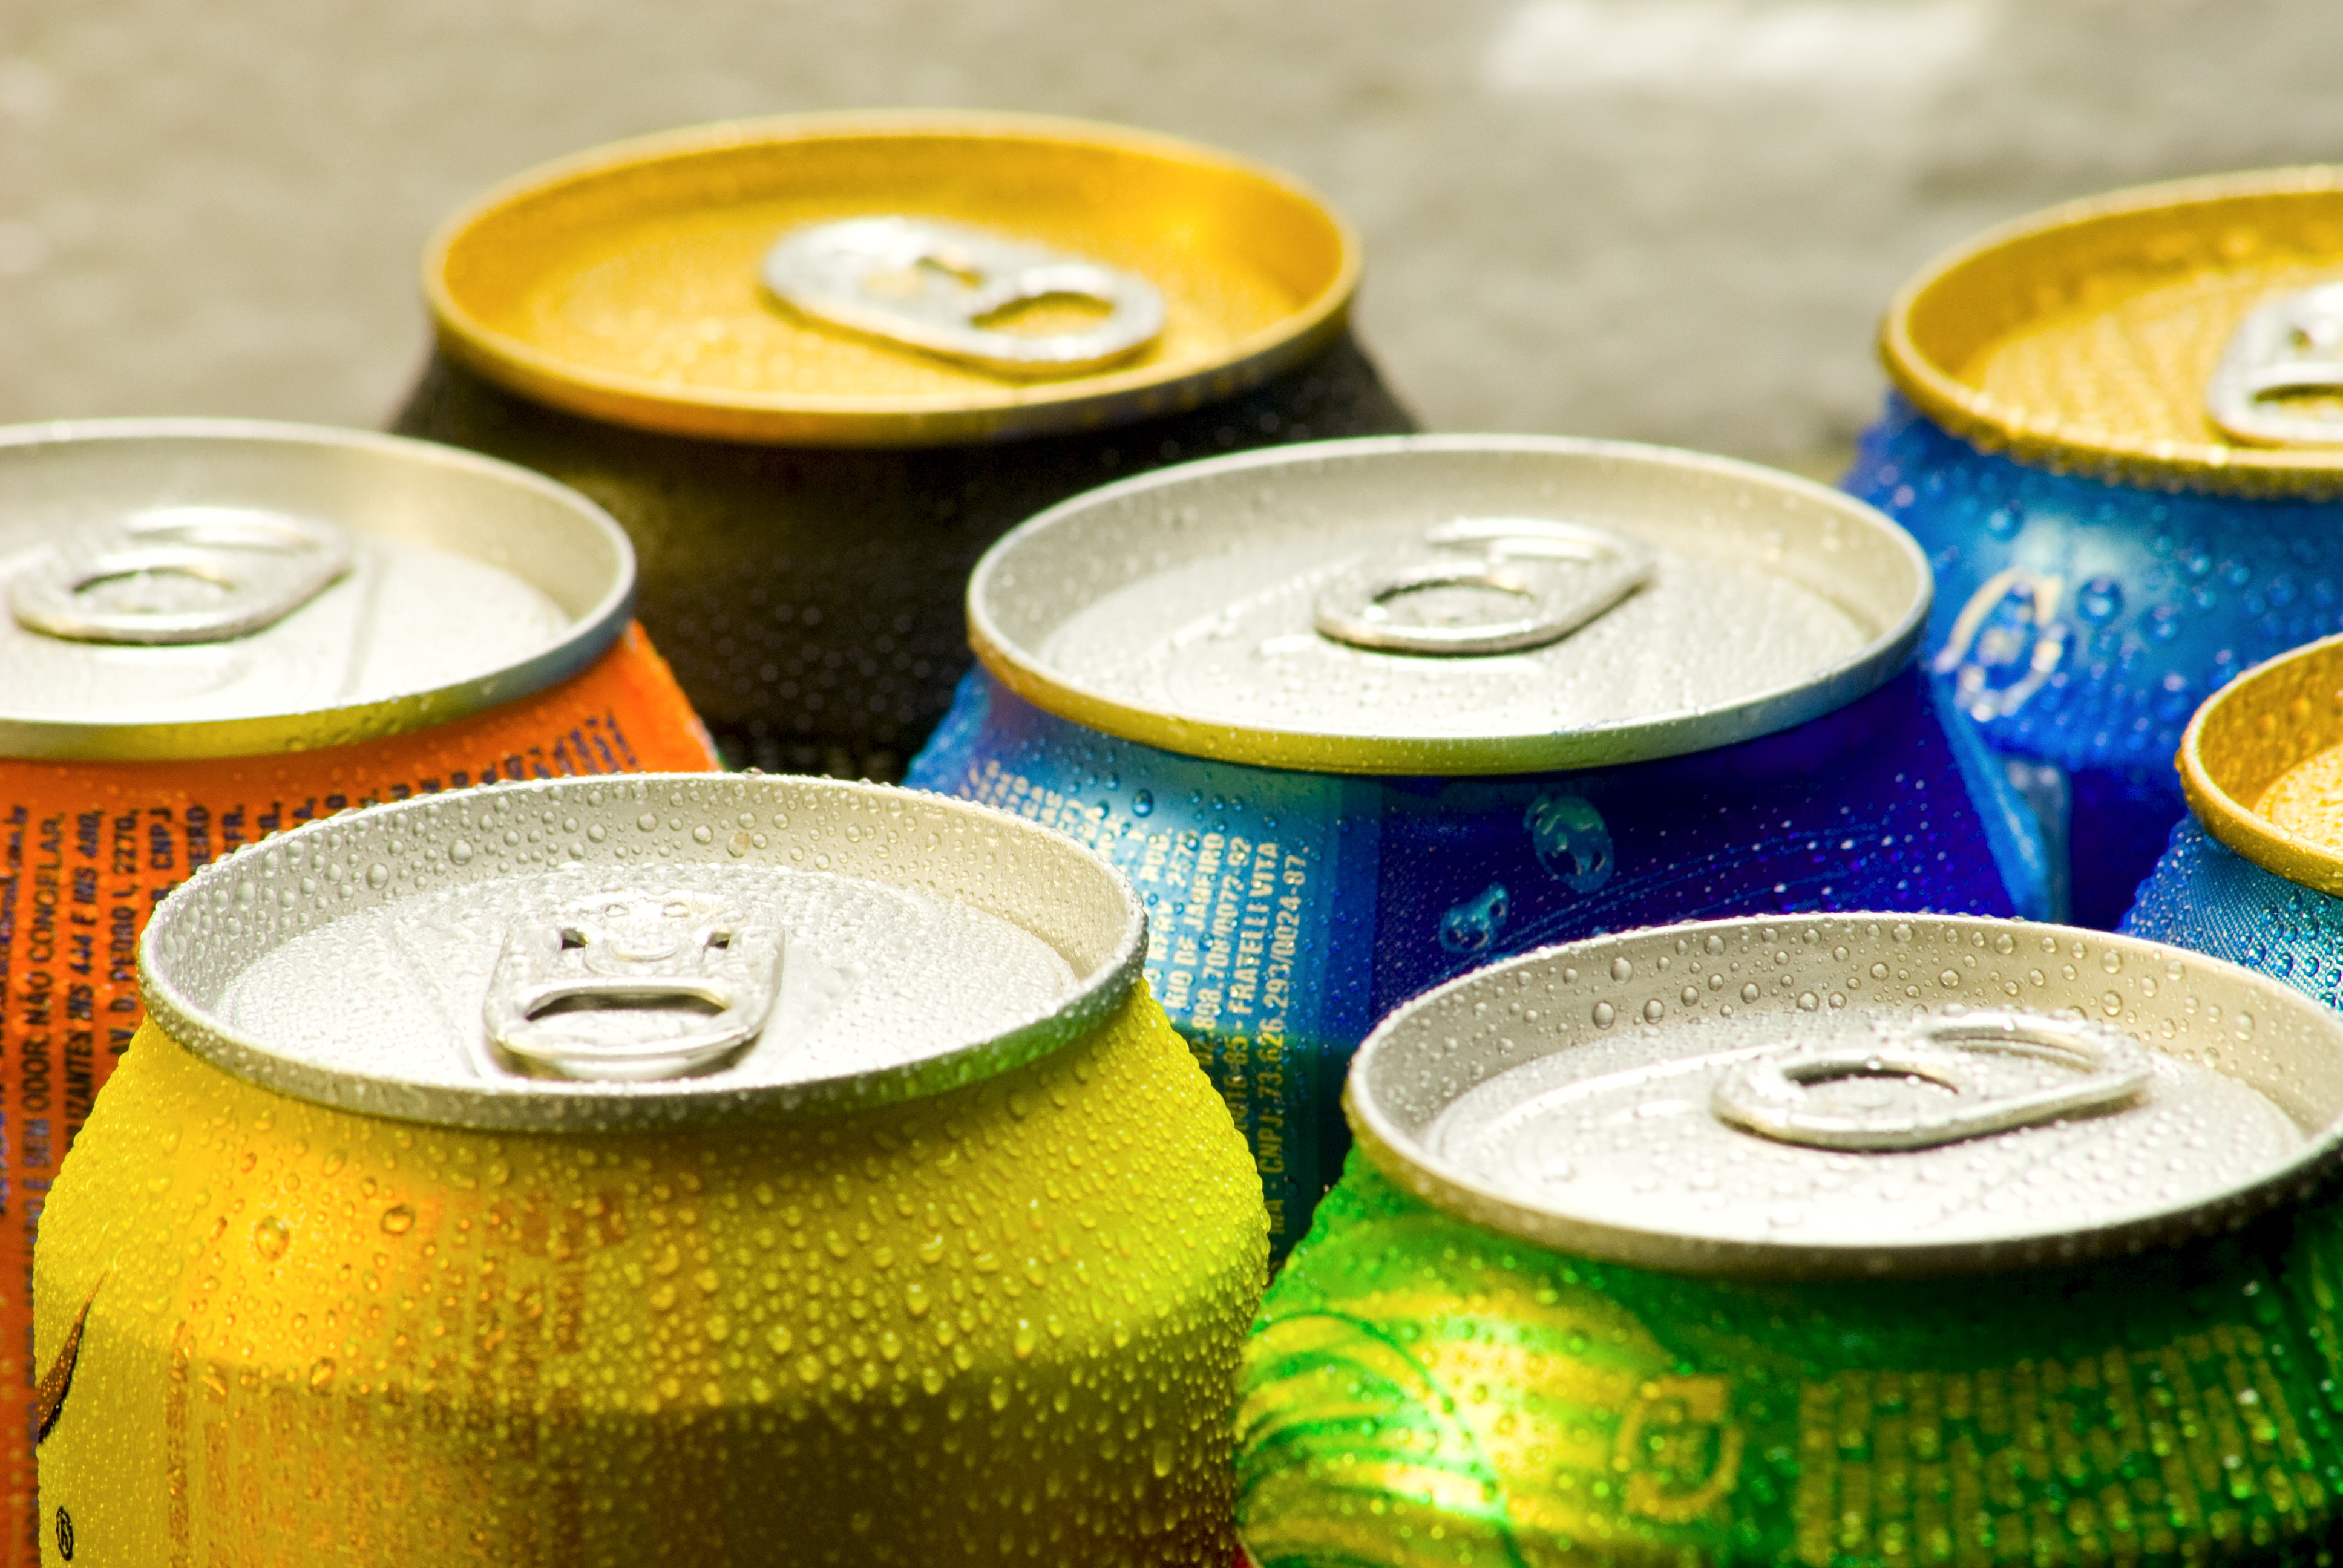 Picture of cans of soft drink.